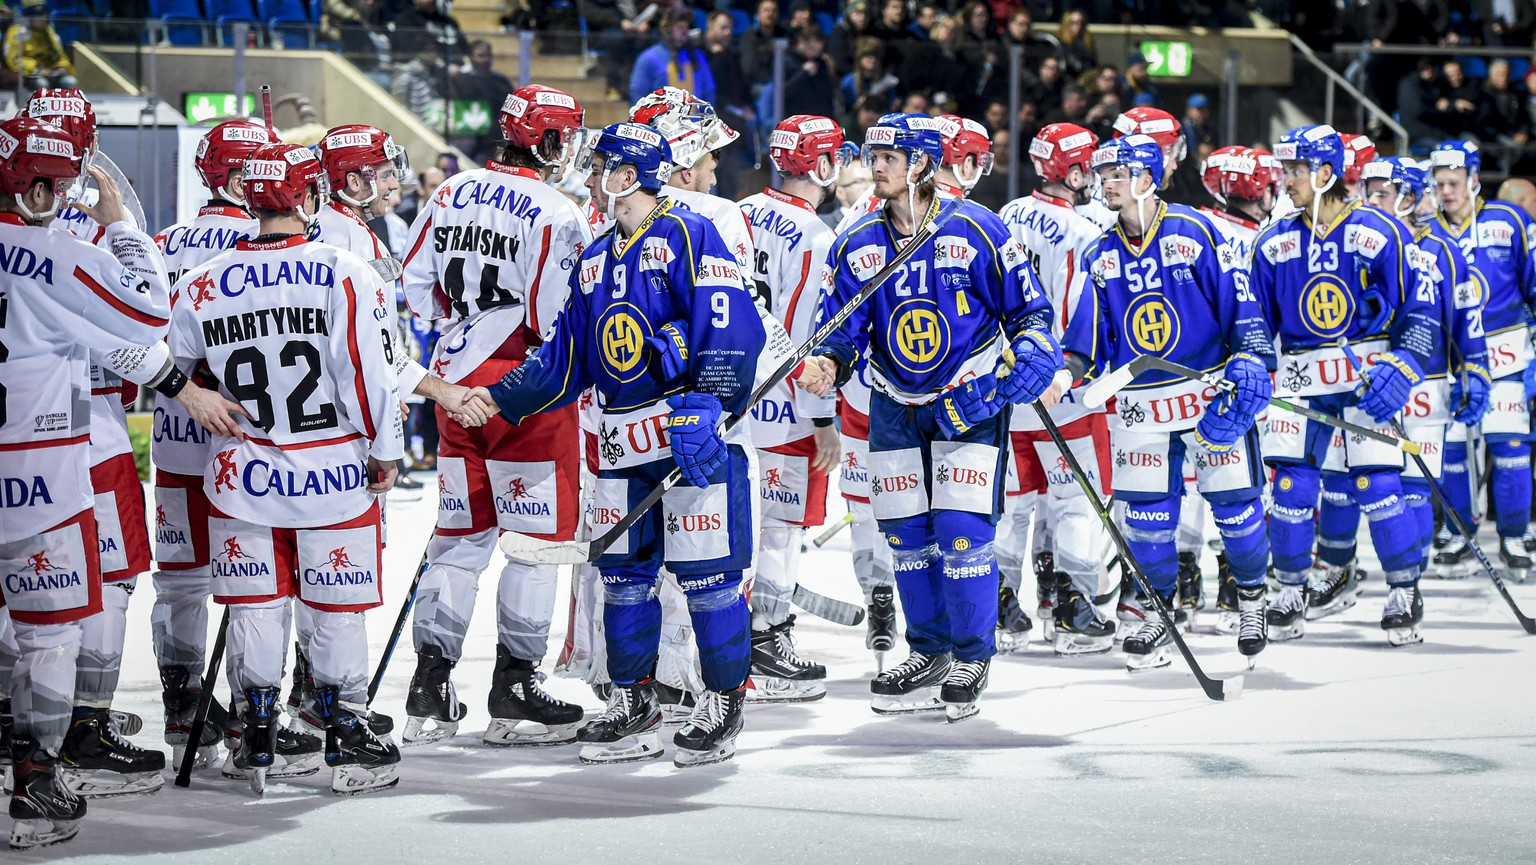 Davos' Magnus Nygren and the team after the game between HC Davos and HC Ocelari Trinec, at the 93th Spengler Cup ice hockey tournament in Davos, Switzerland, Friday, December 27, 2019. (KEYSTONE/Melanie Duchene)